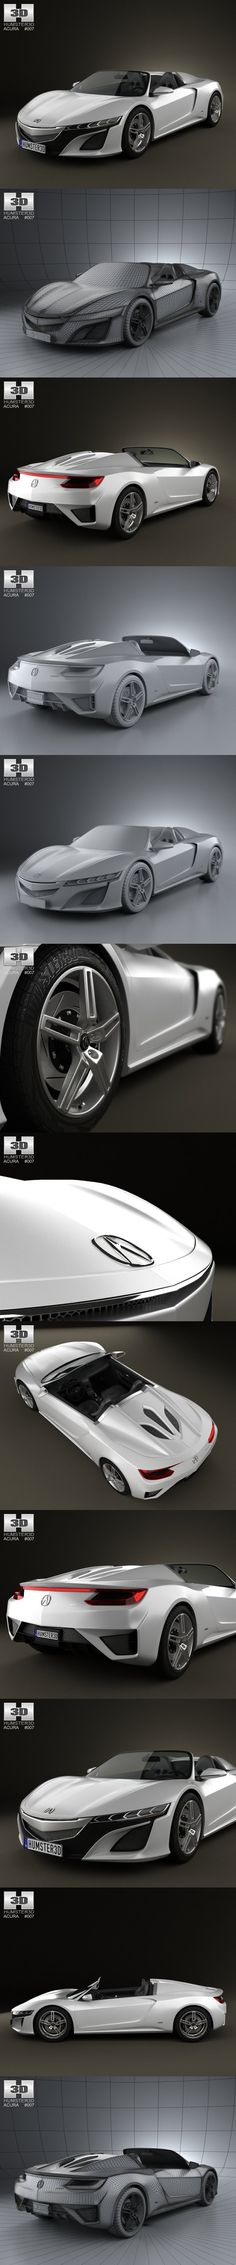 Acura NSX convertible 2012. 3D Vehicles